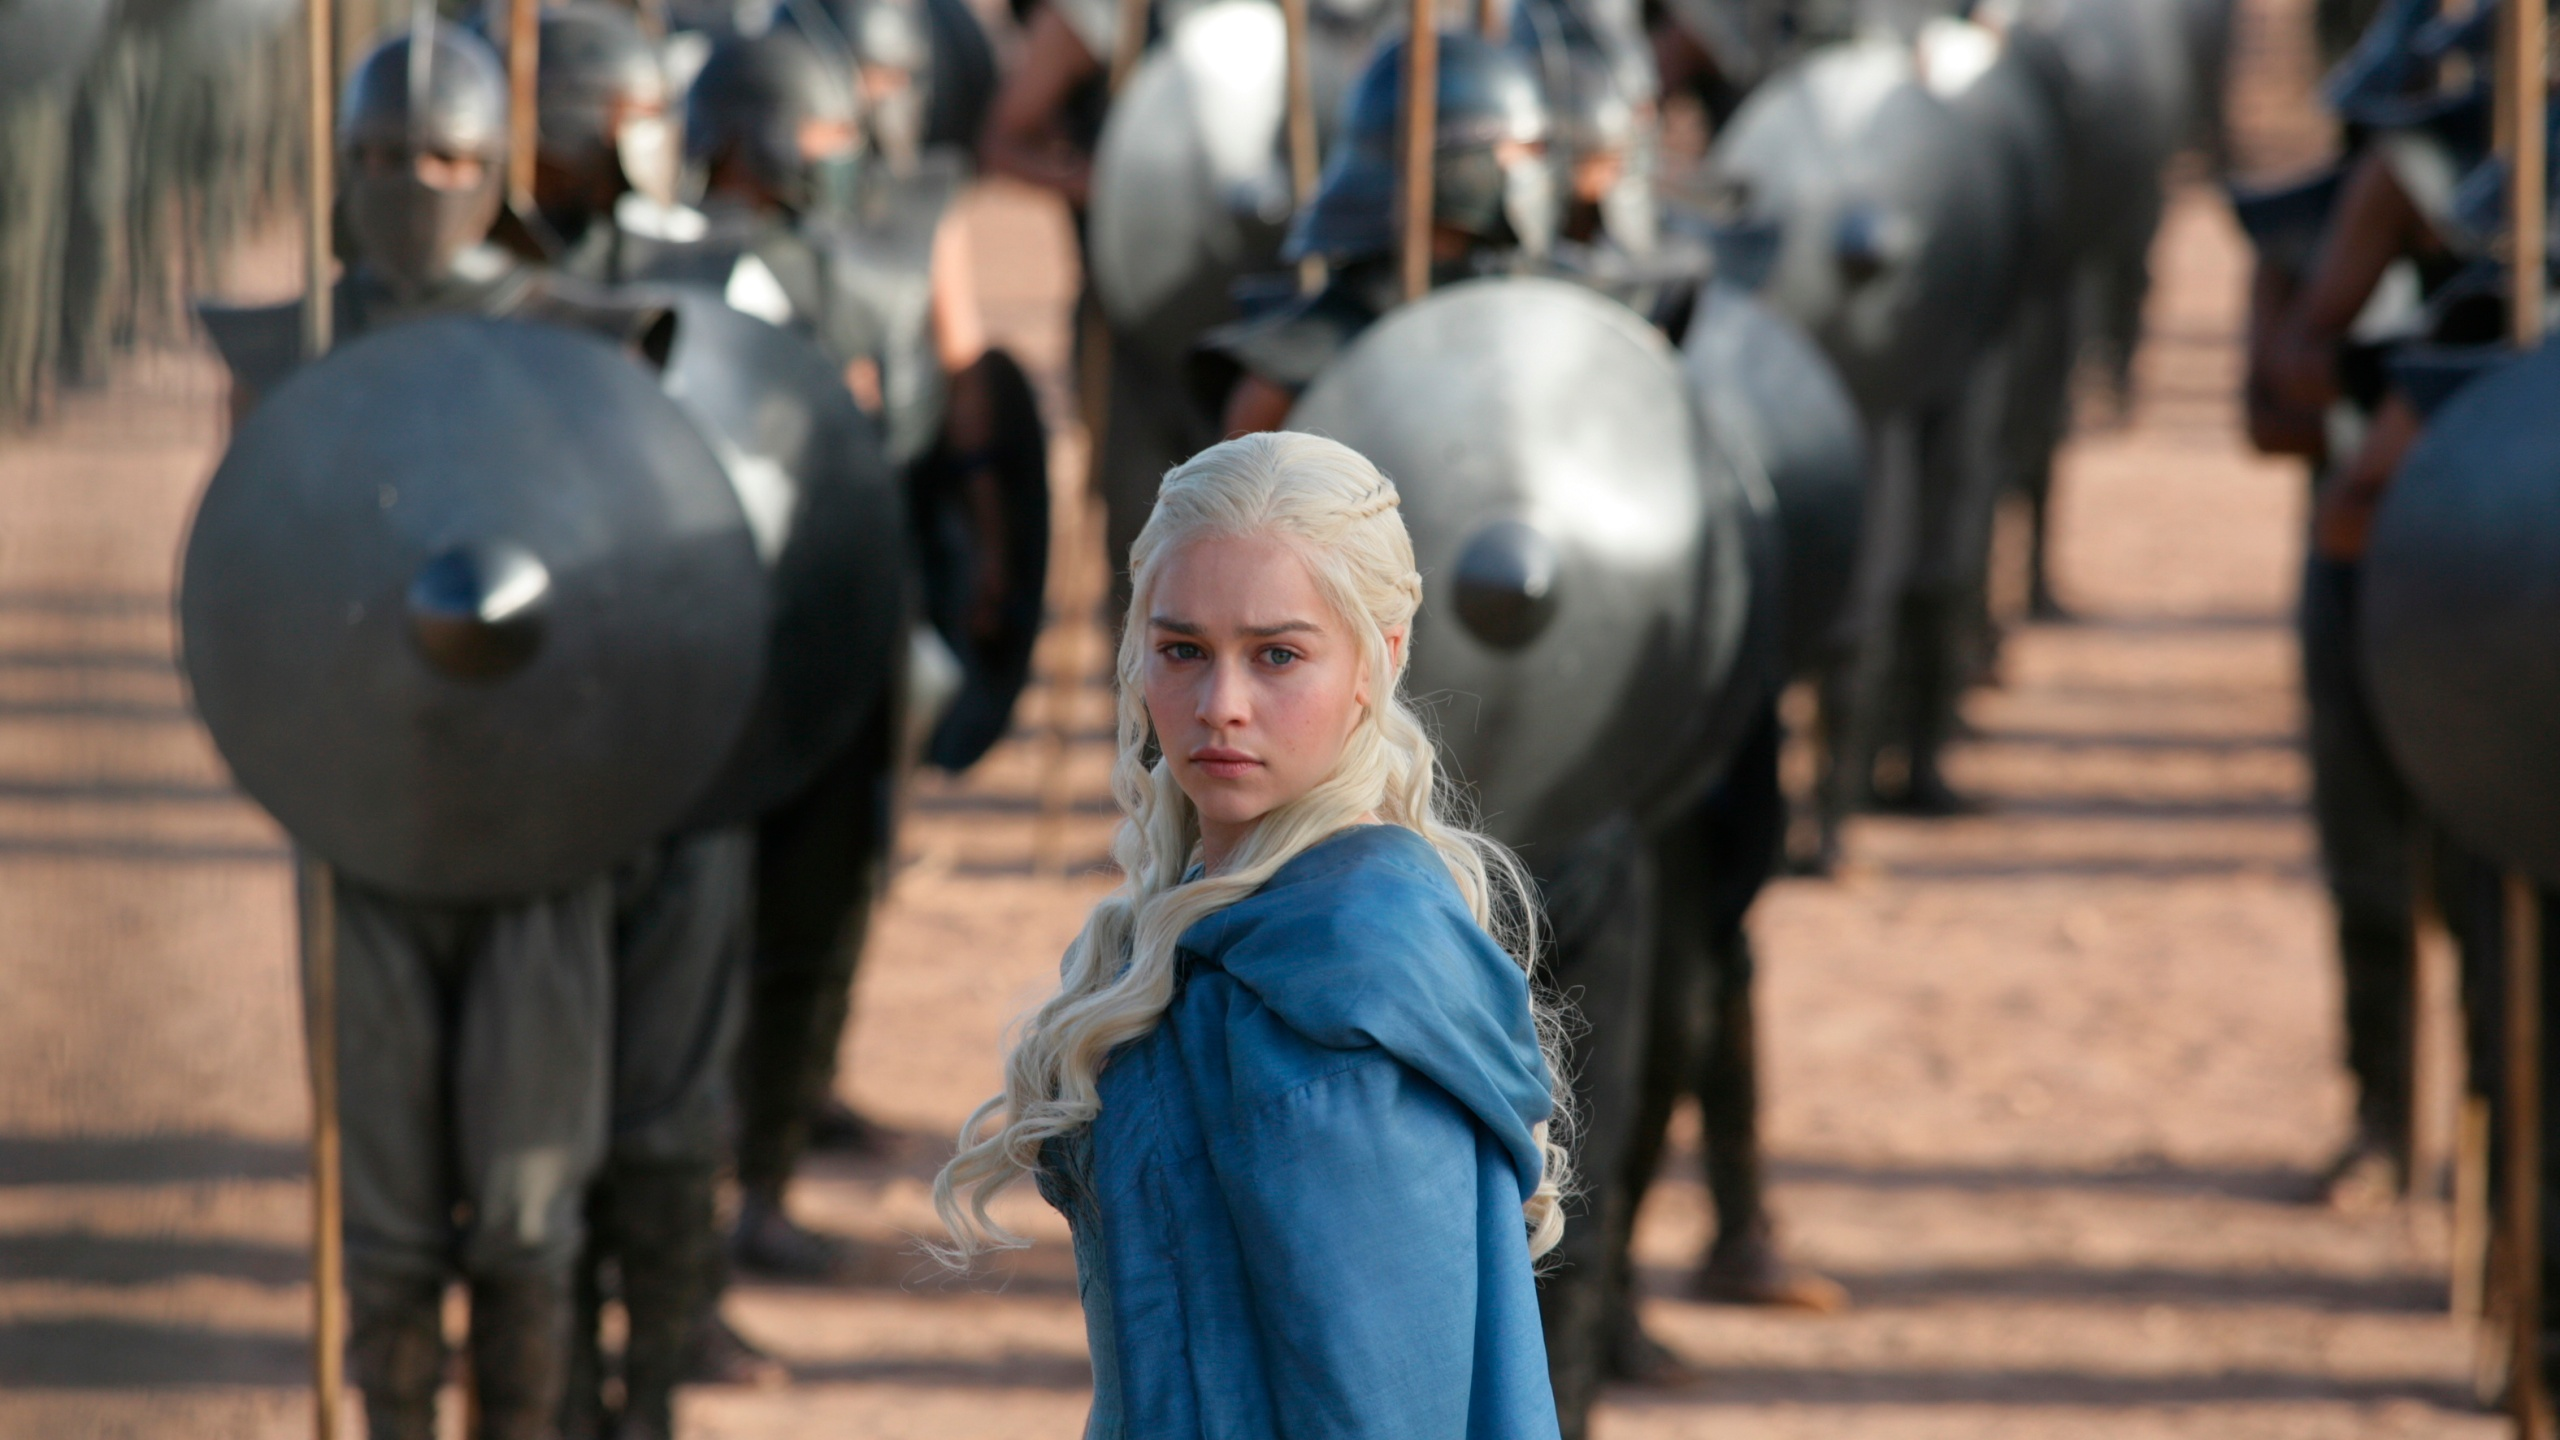 TV--Game_of_Thrones-Off_The_Books_44200-159532.jpg21269890